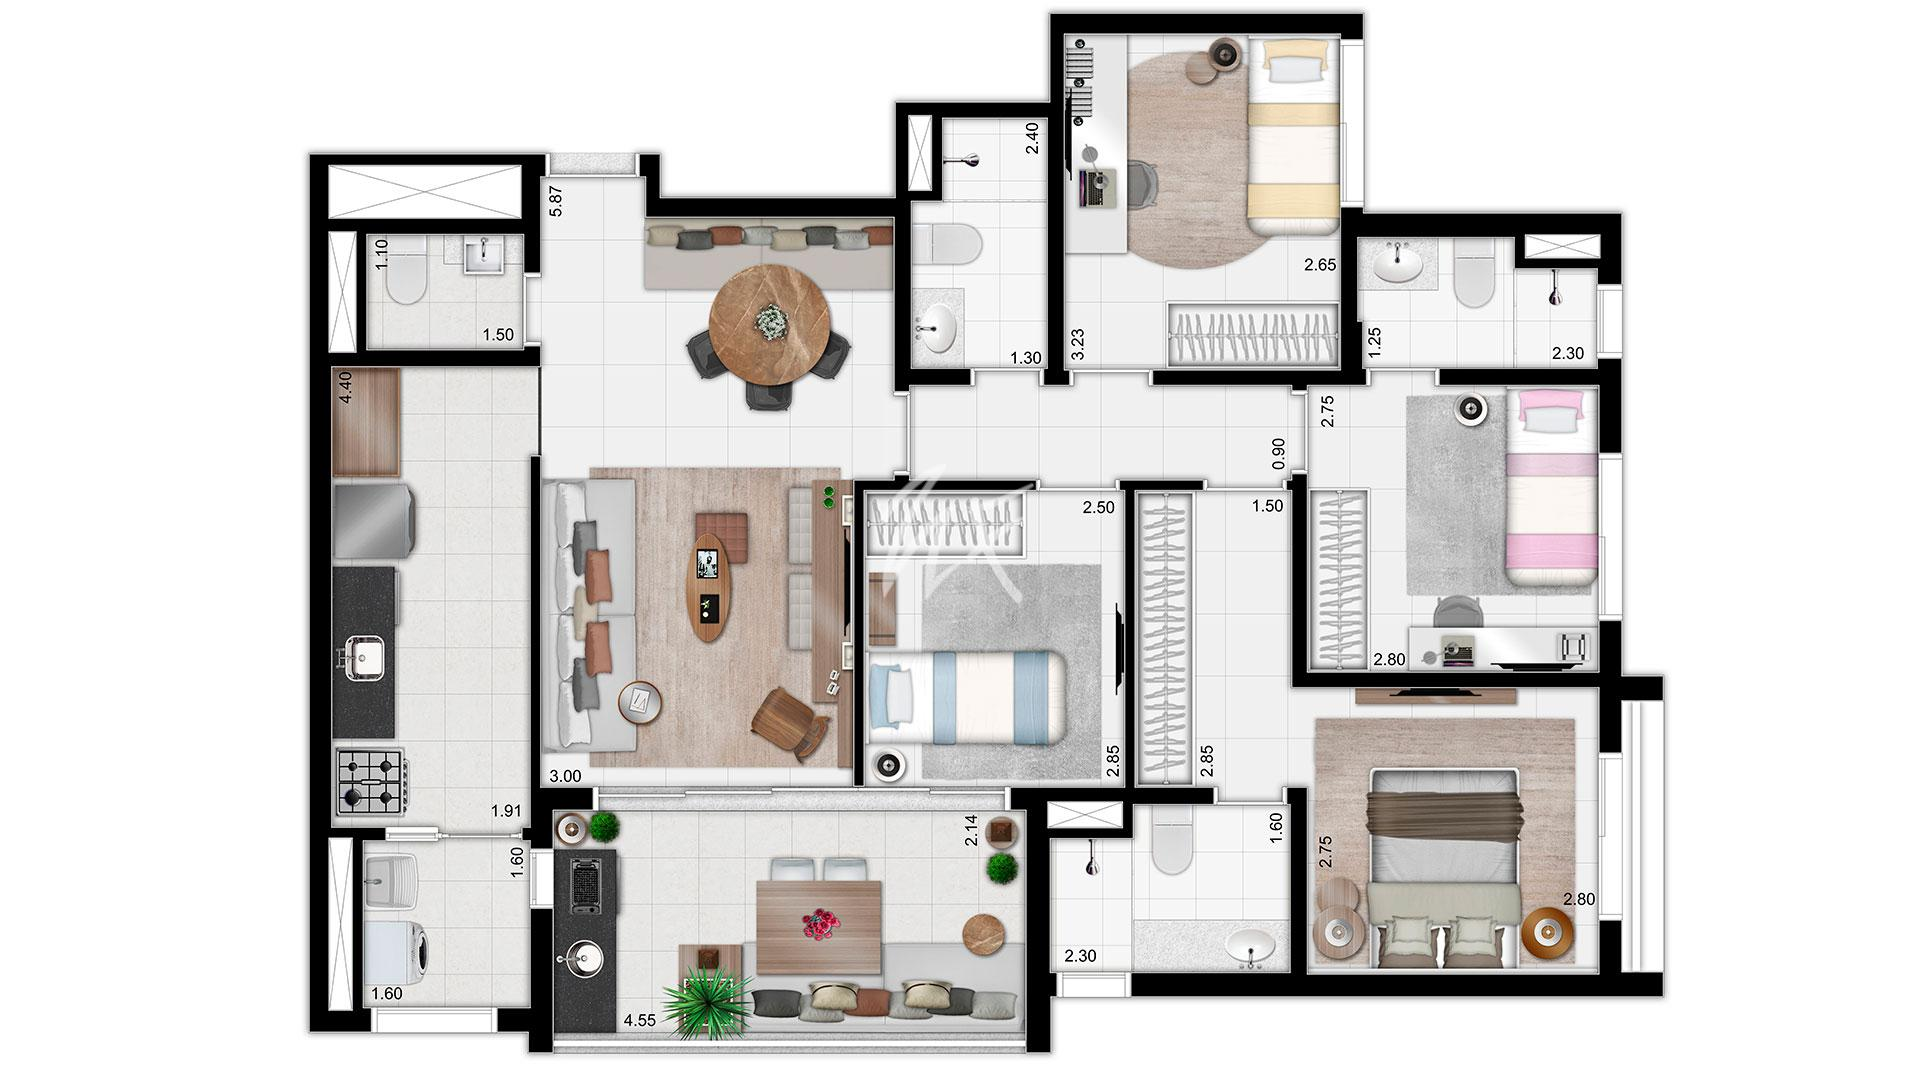 Tipo - 108m²